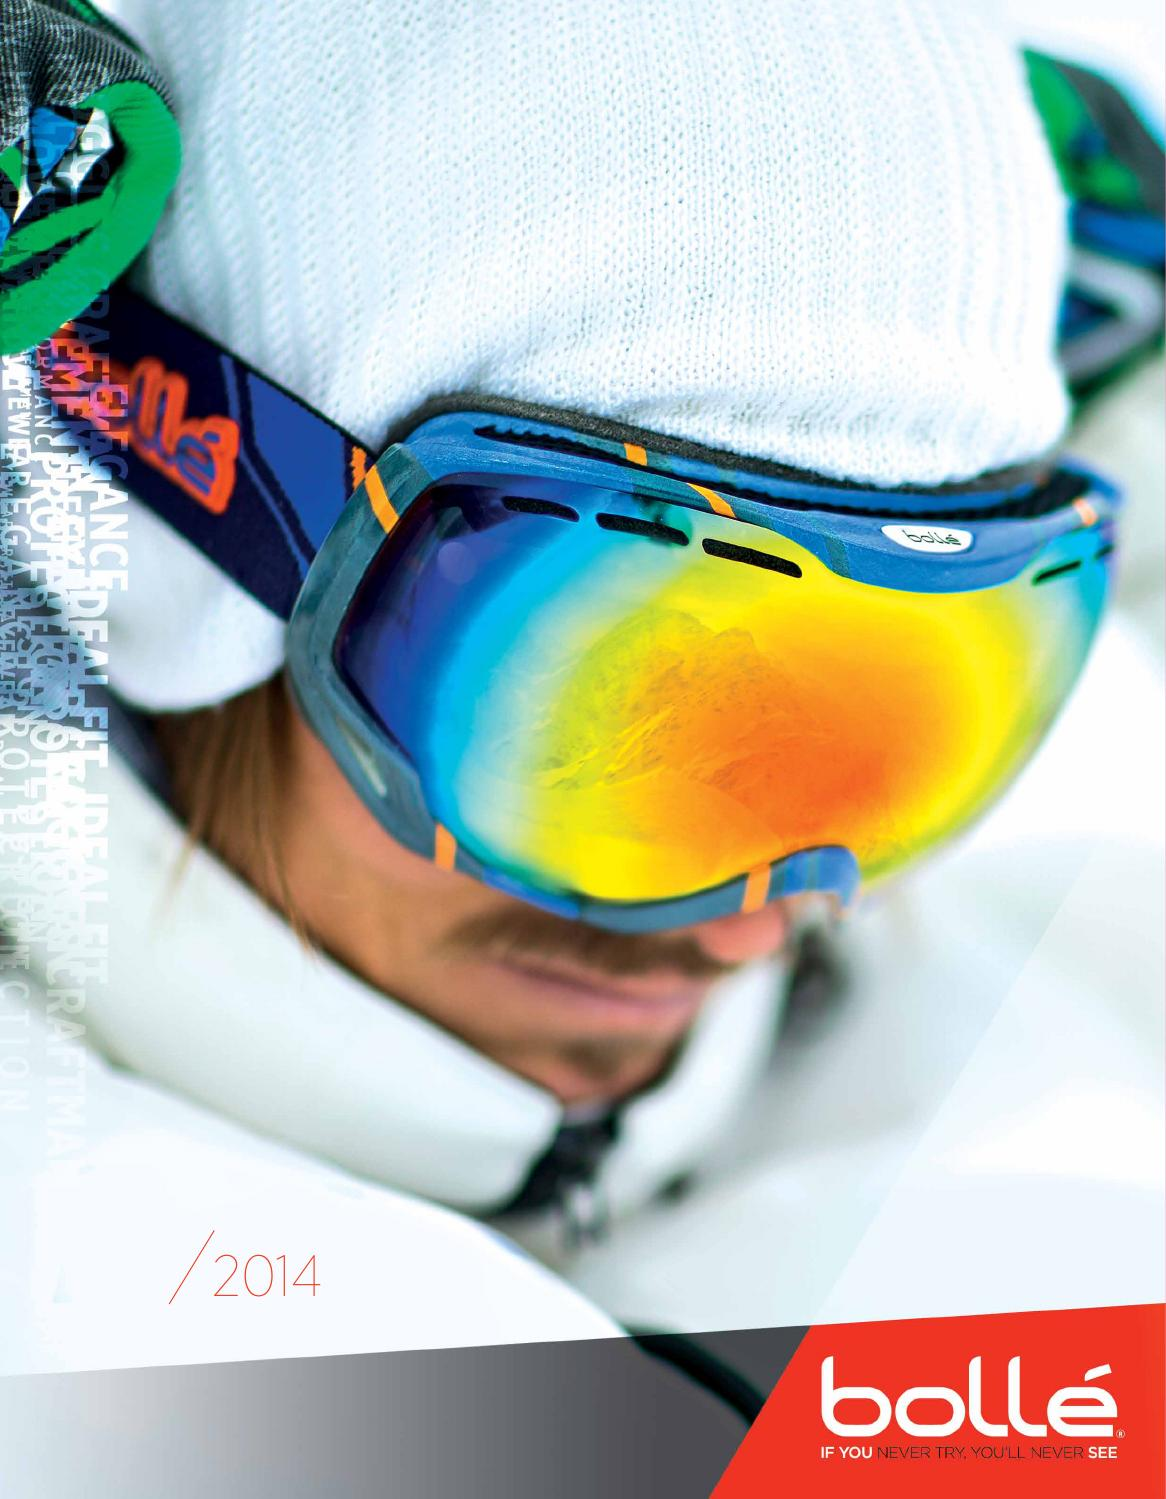 e532af470260 1415 bolle goggles by zuzupopo.snow - issuu